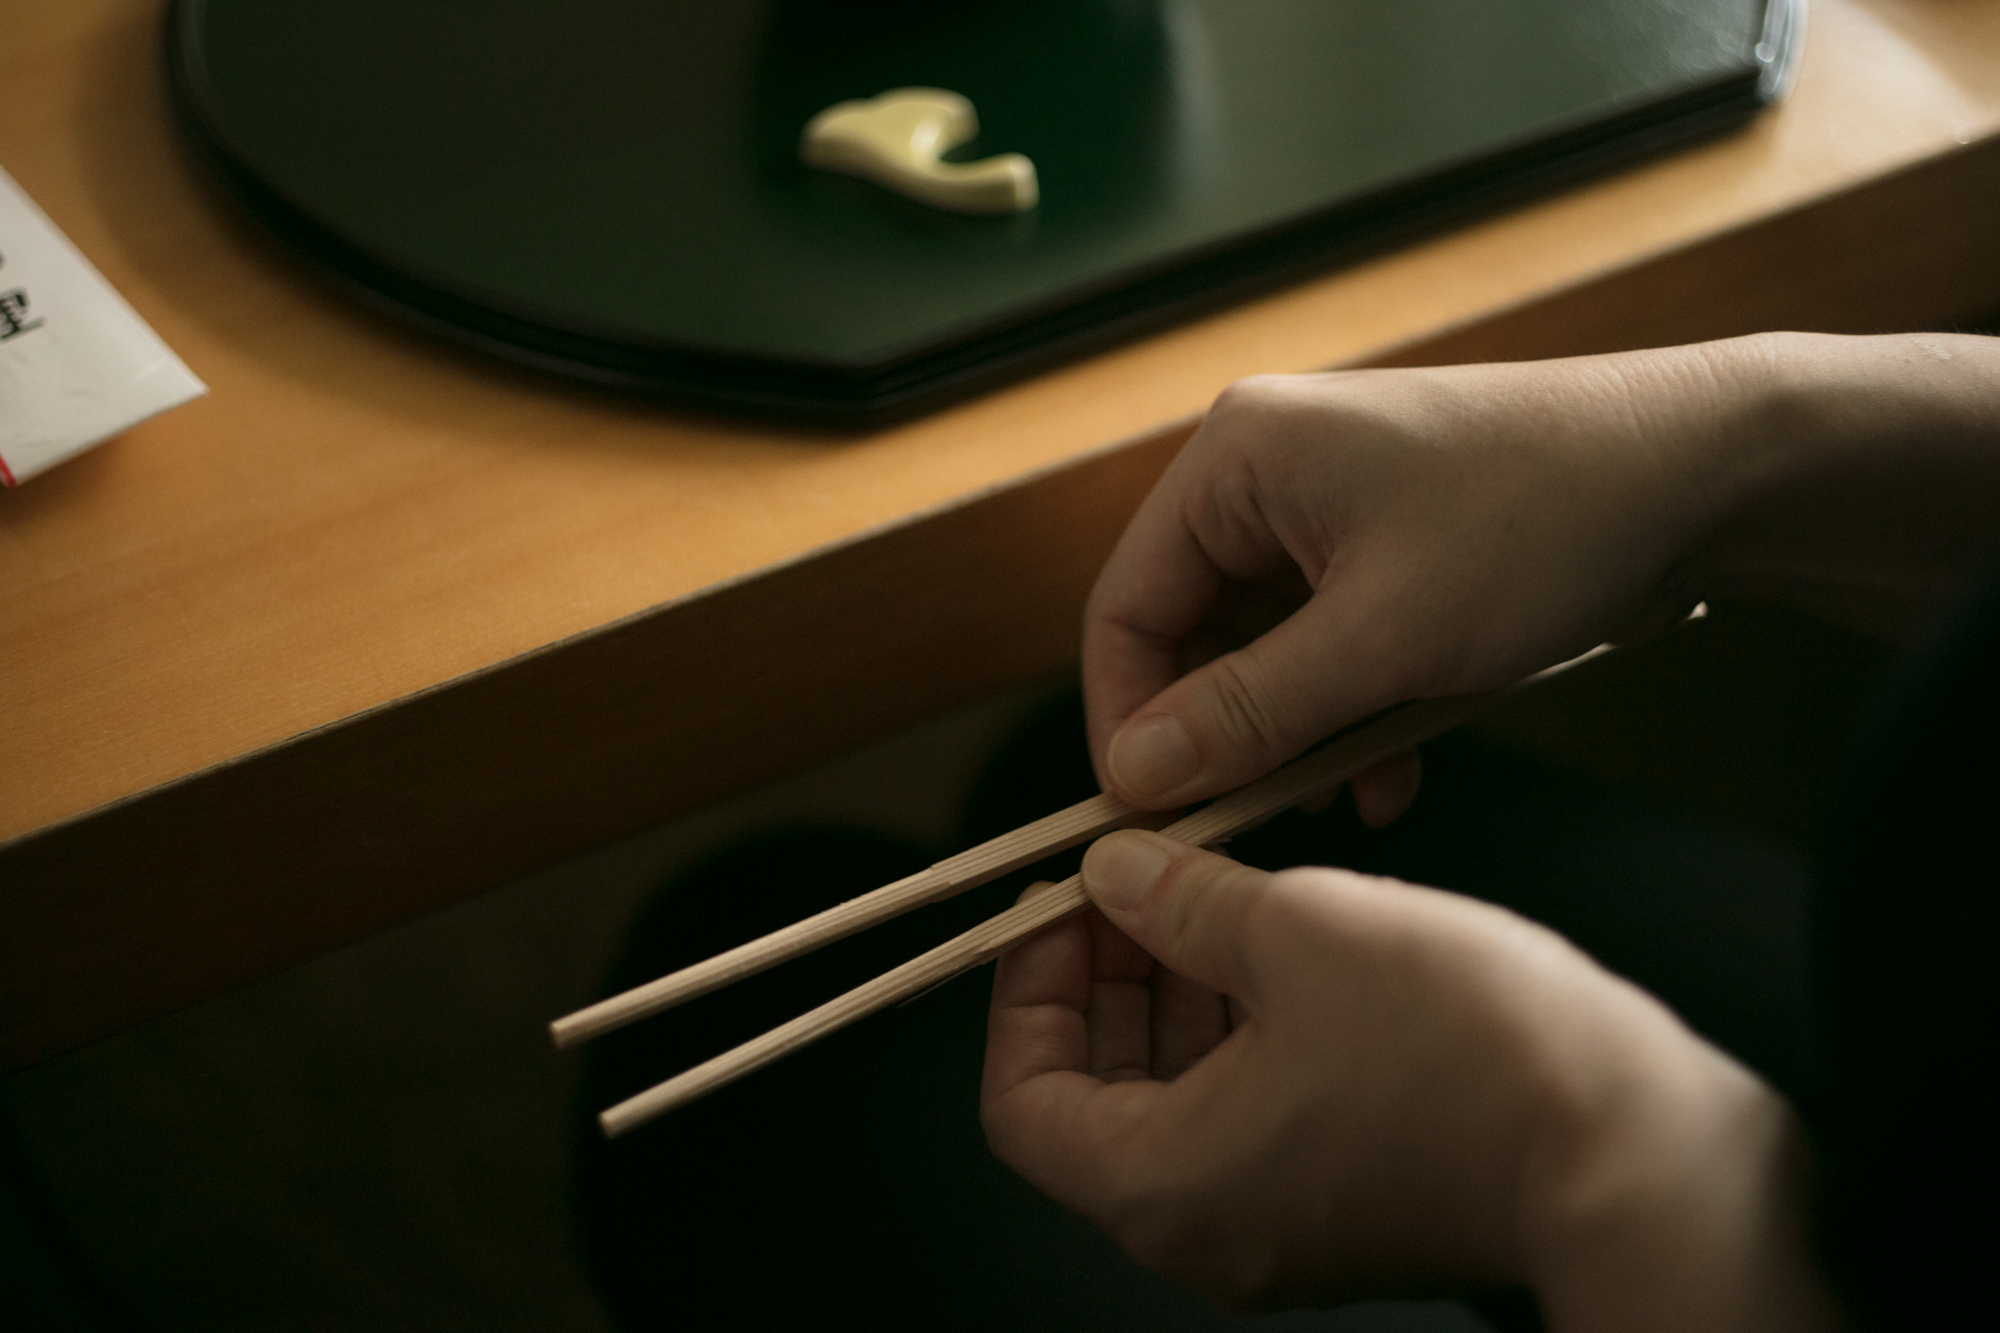 The Basis of Japanese Table Manners is Omotenashi (Welcoming Spirit & Hospitality)